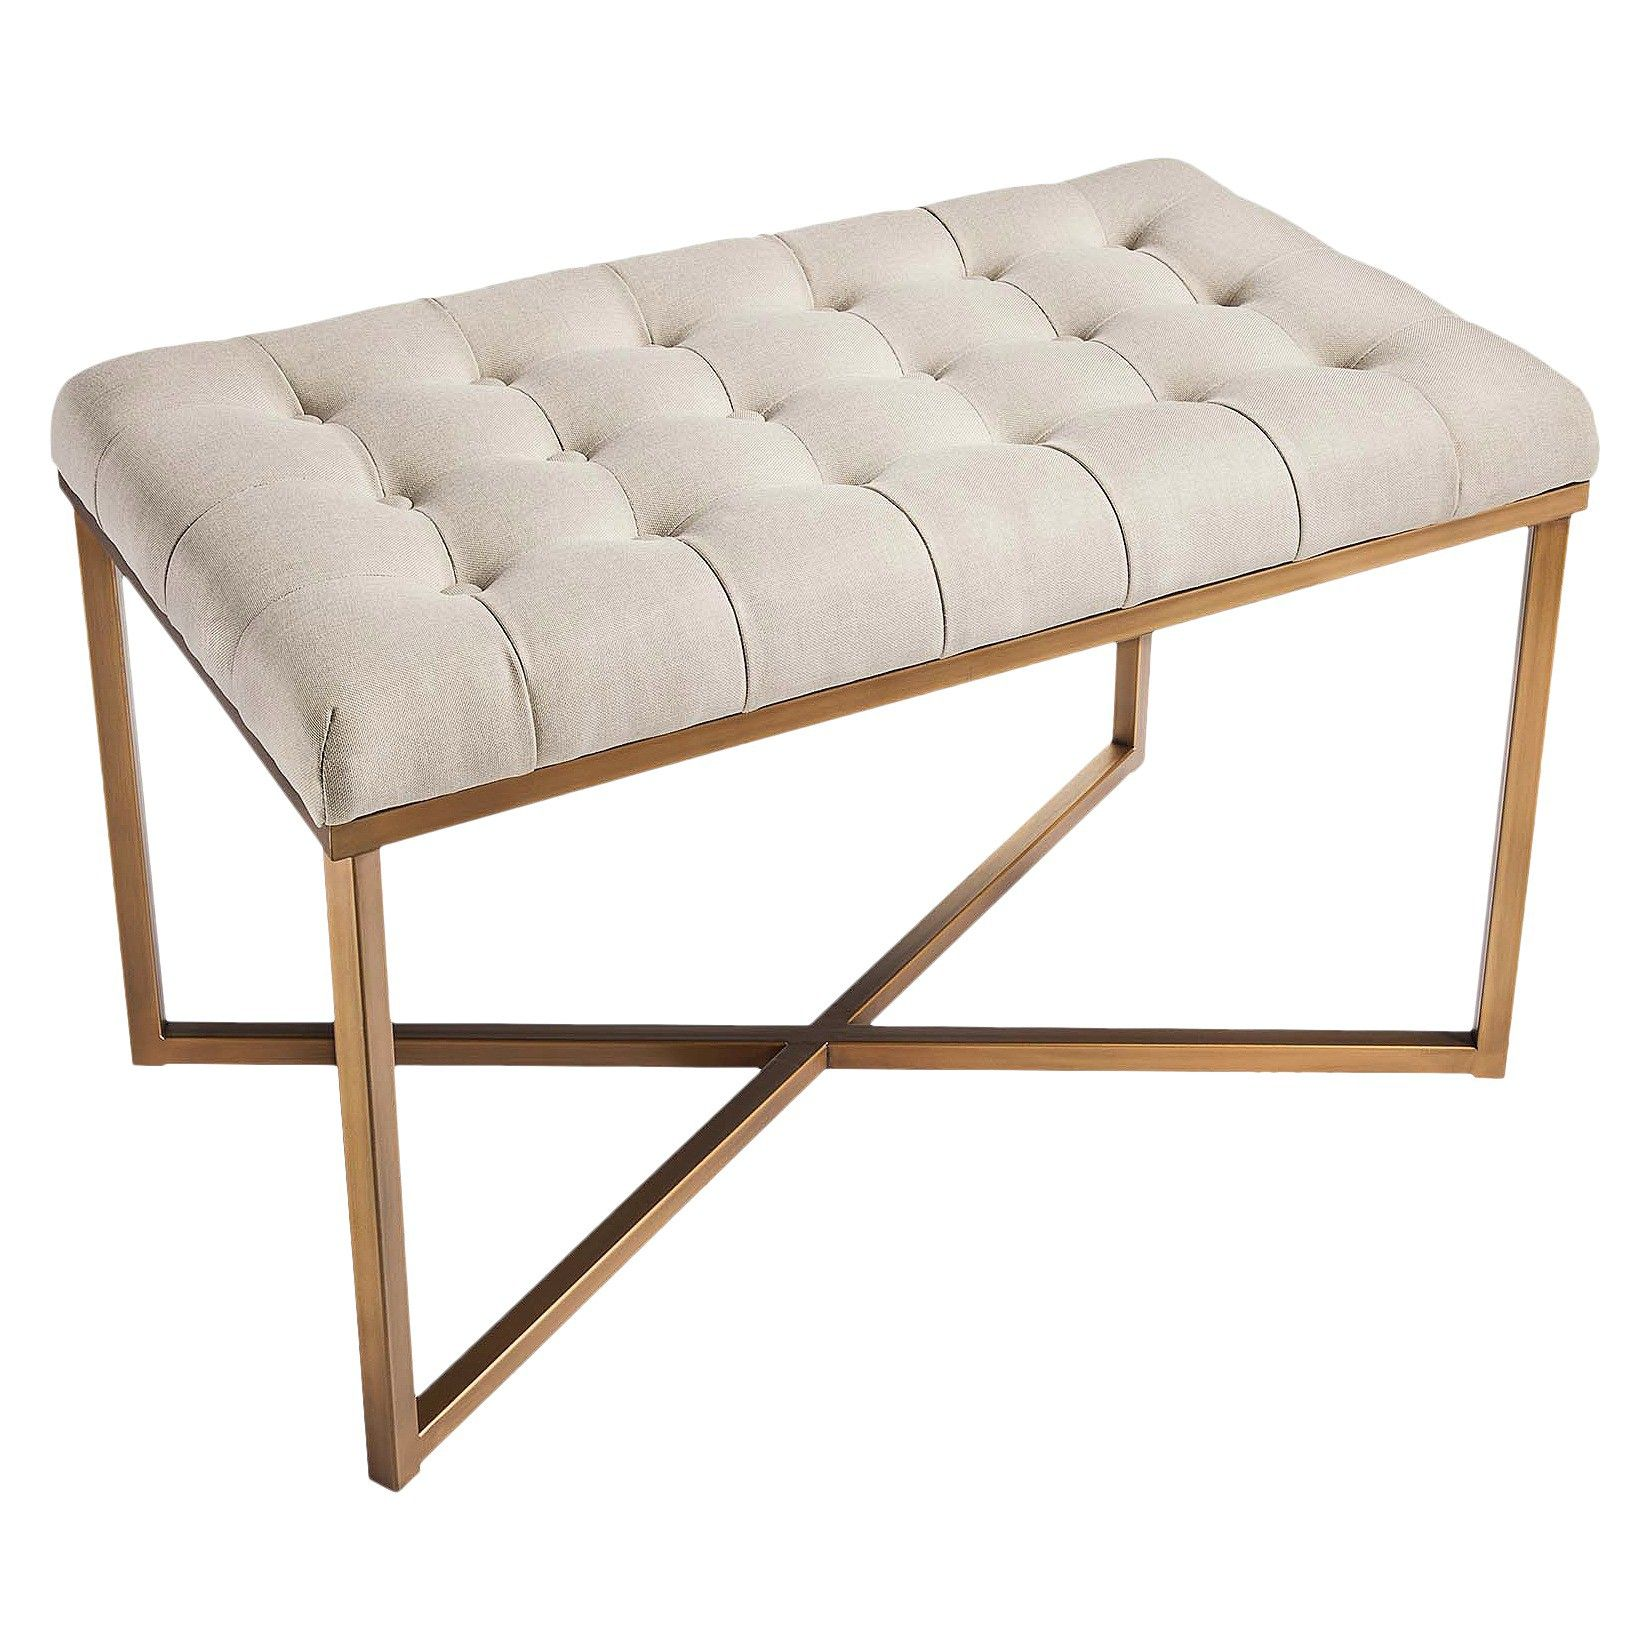 threshold™ tufted bench - buff beige and gold : target